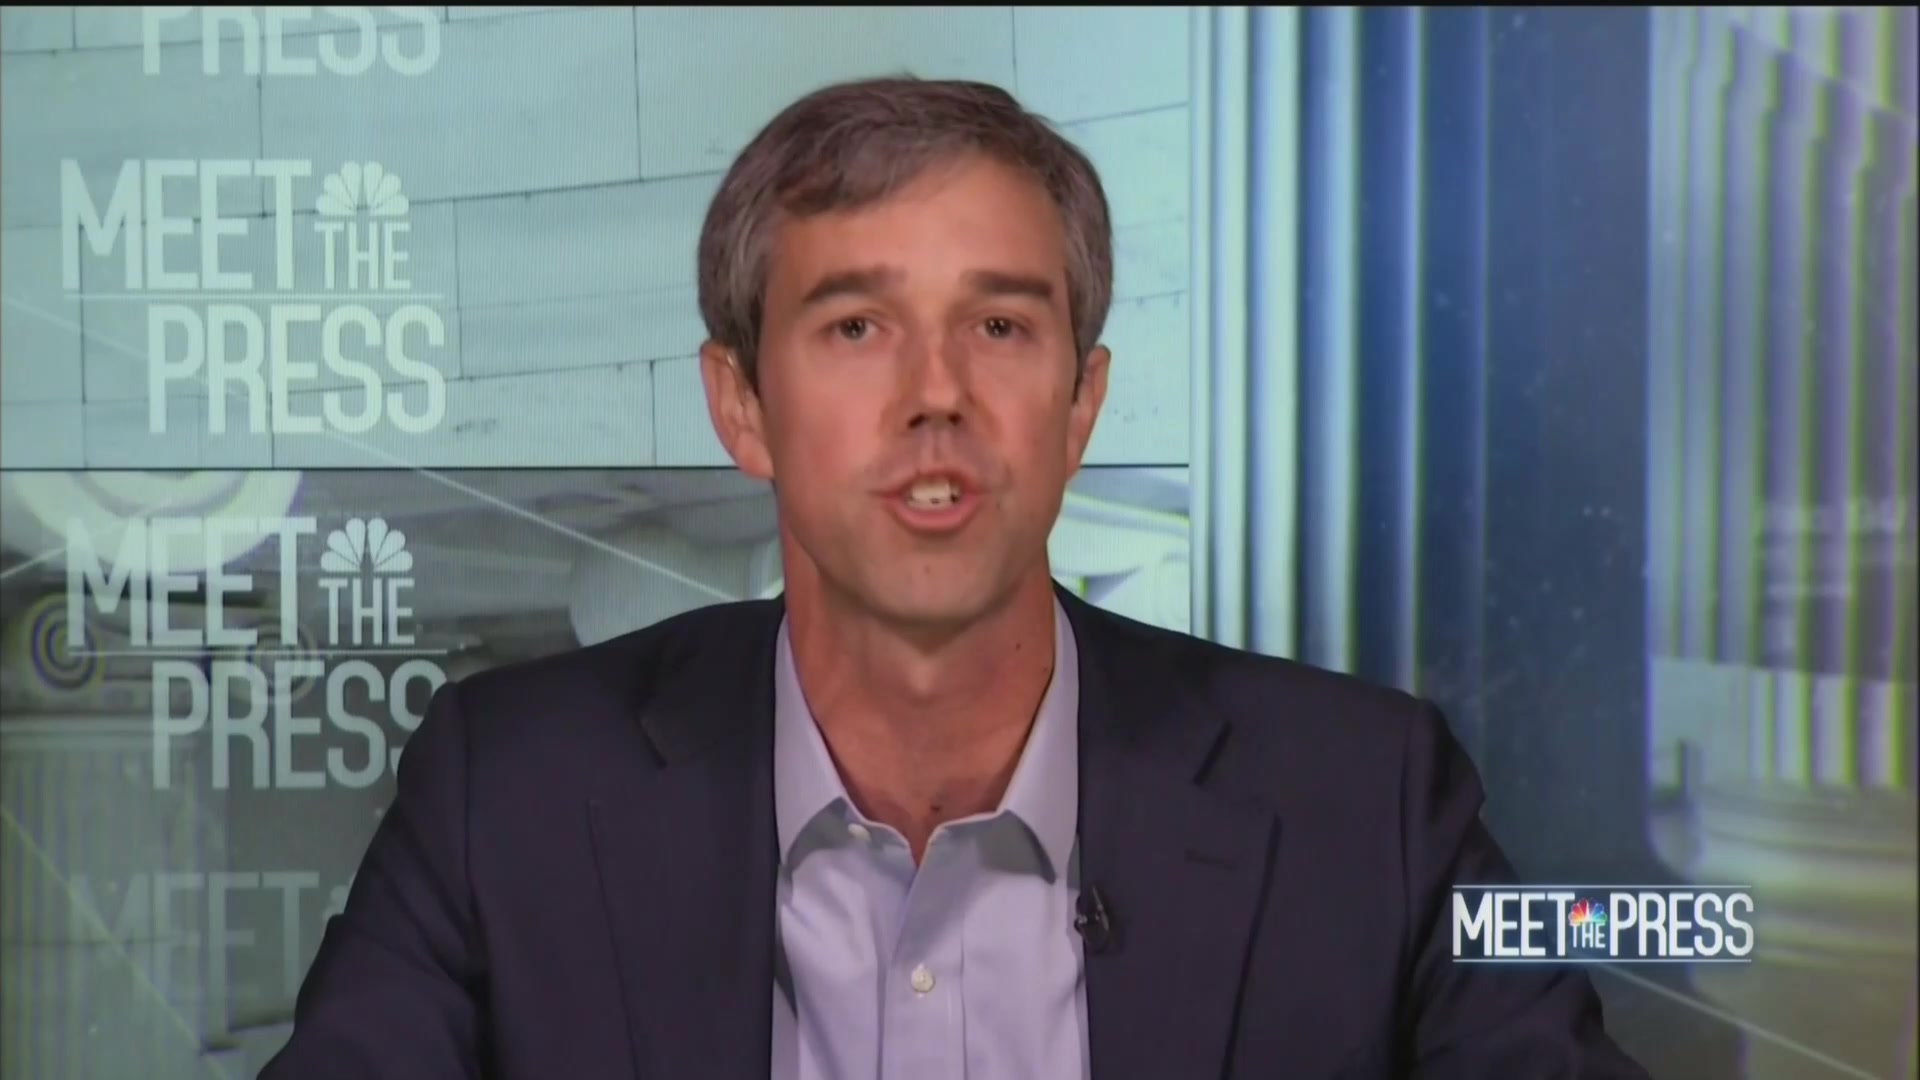 Beto O'Rourke Says El Paso Made Him Realize the 'Cost' of Trump's Presidency: 'This Moment Will Define Us'